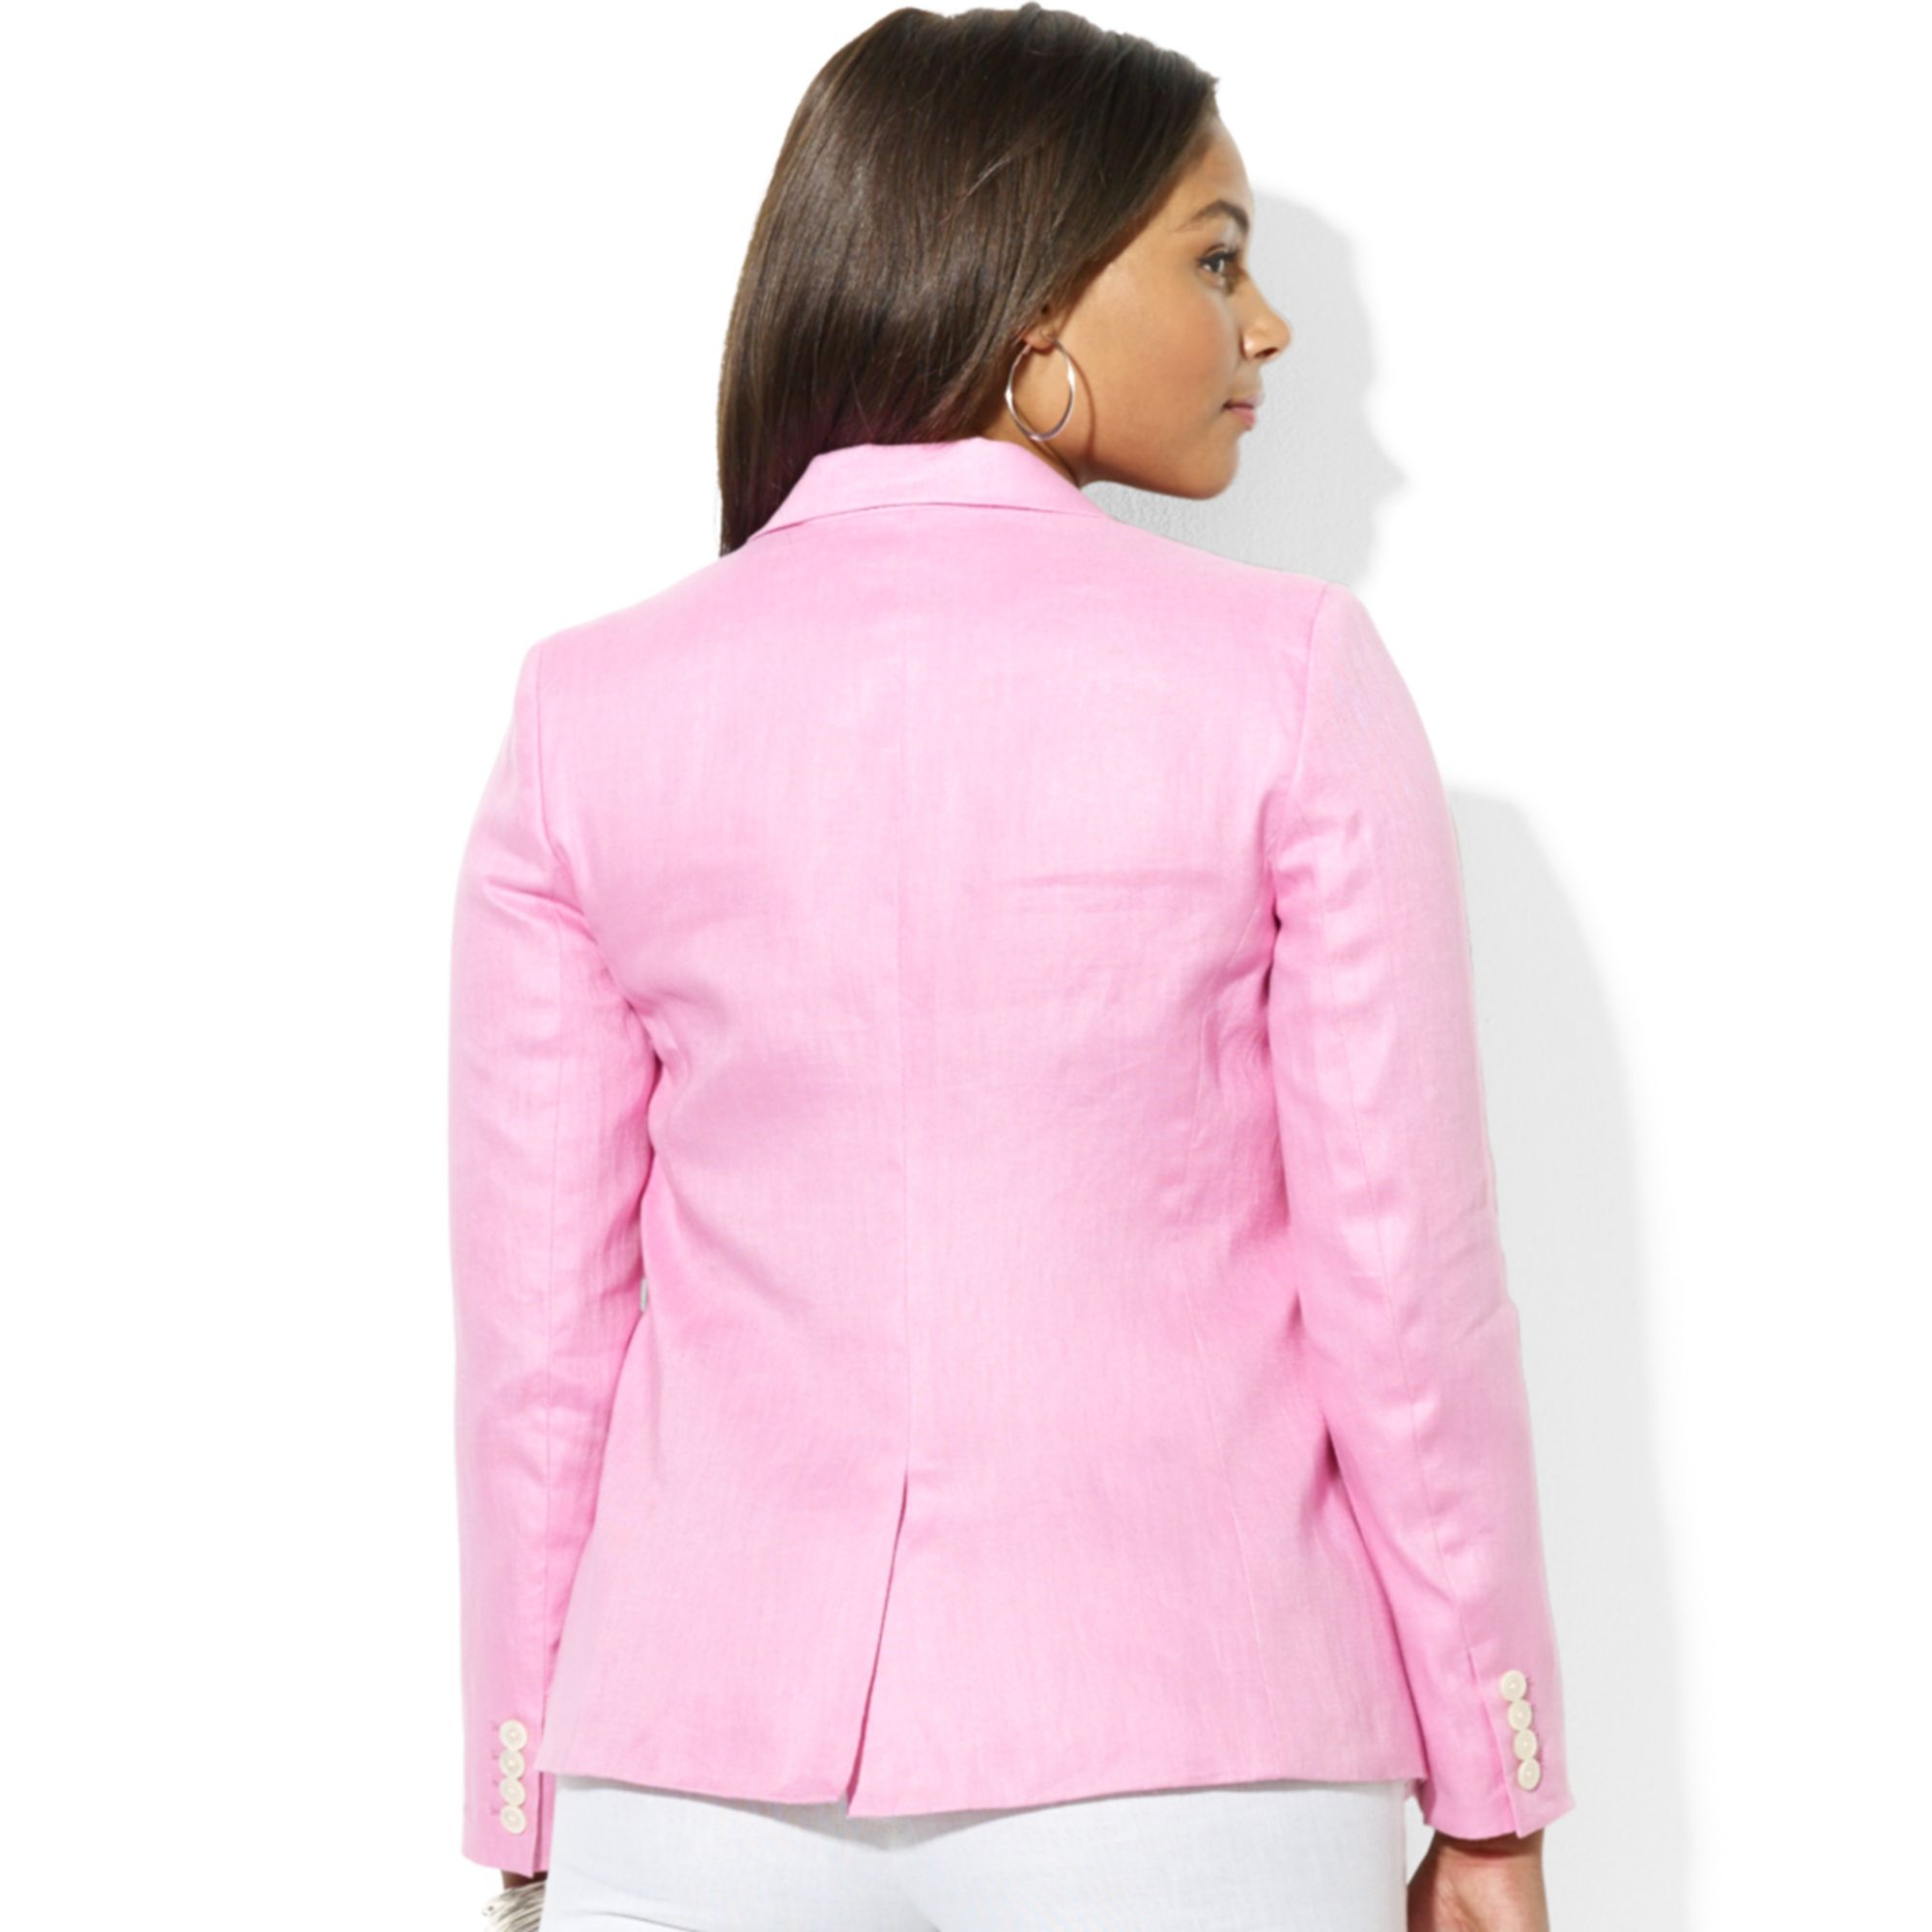 Shopping Resources for Plus-Size Blazers, Jackets & Vests. One of the most popular and in-demand items, plus-size blazers and jackets are available at a wide range of retailers on the internet. Inventories in plus-sizes are often deeper on-line than in many brick-and-mortar locations.